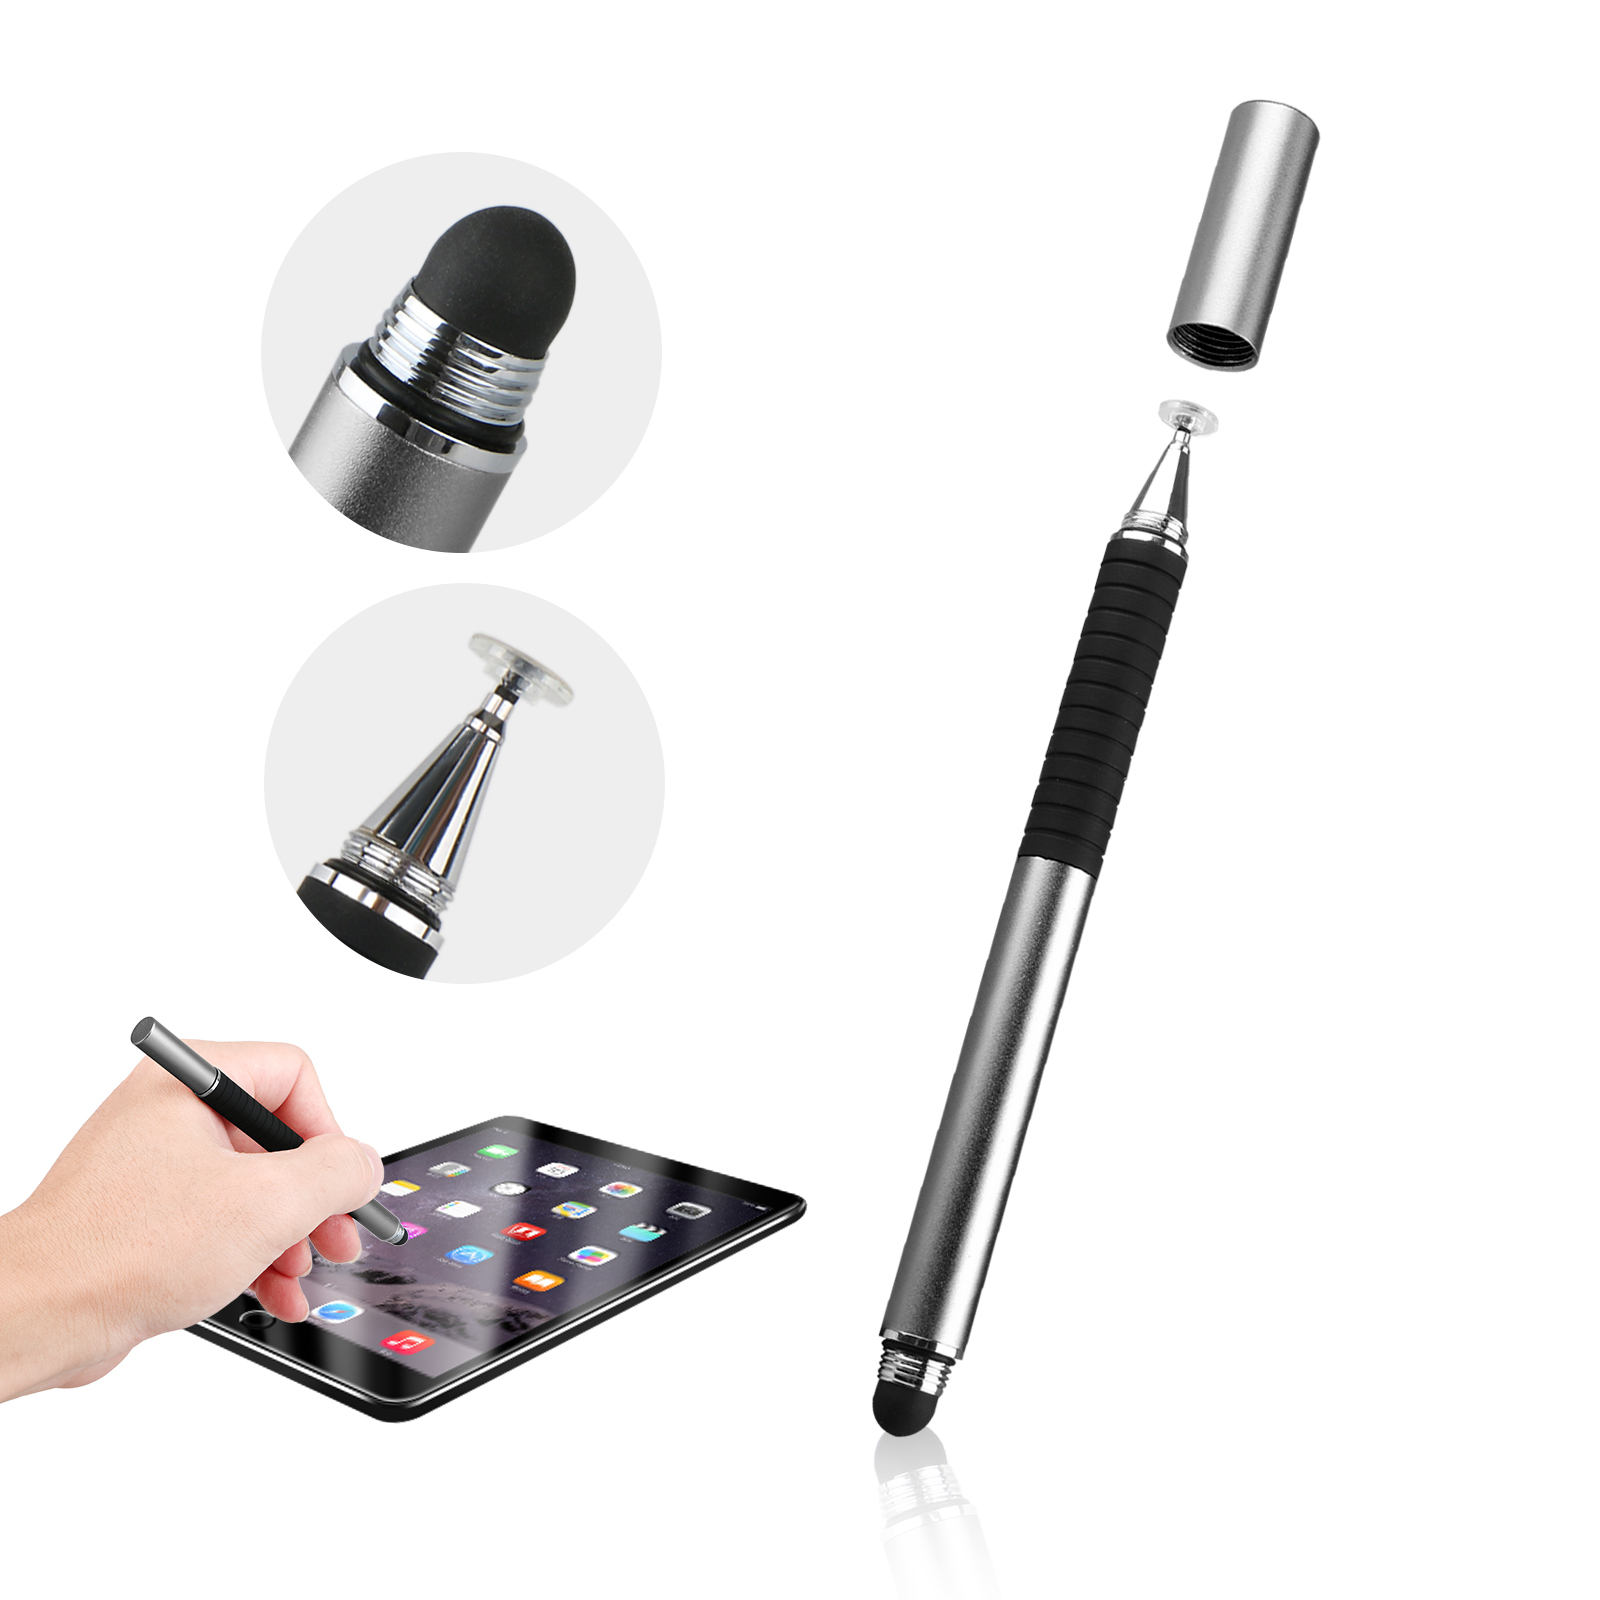 2 in 1 Luxury Fine Point Stylus Pen for Apple iPad Air, iPhone X 8,Samsung Galaxy Tablet, Kindle